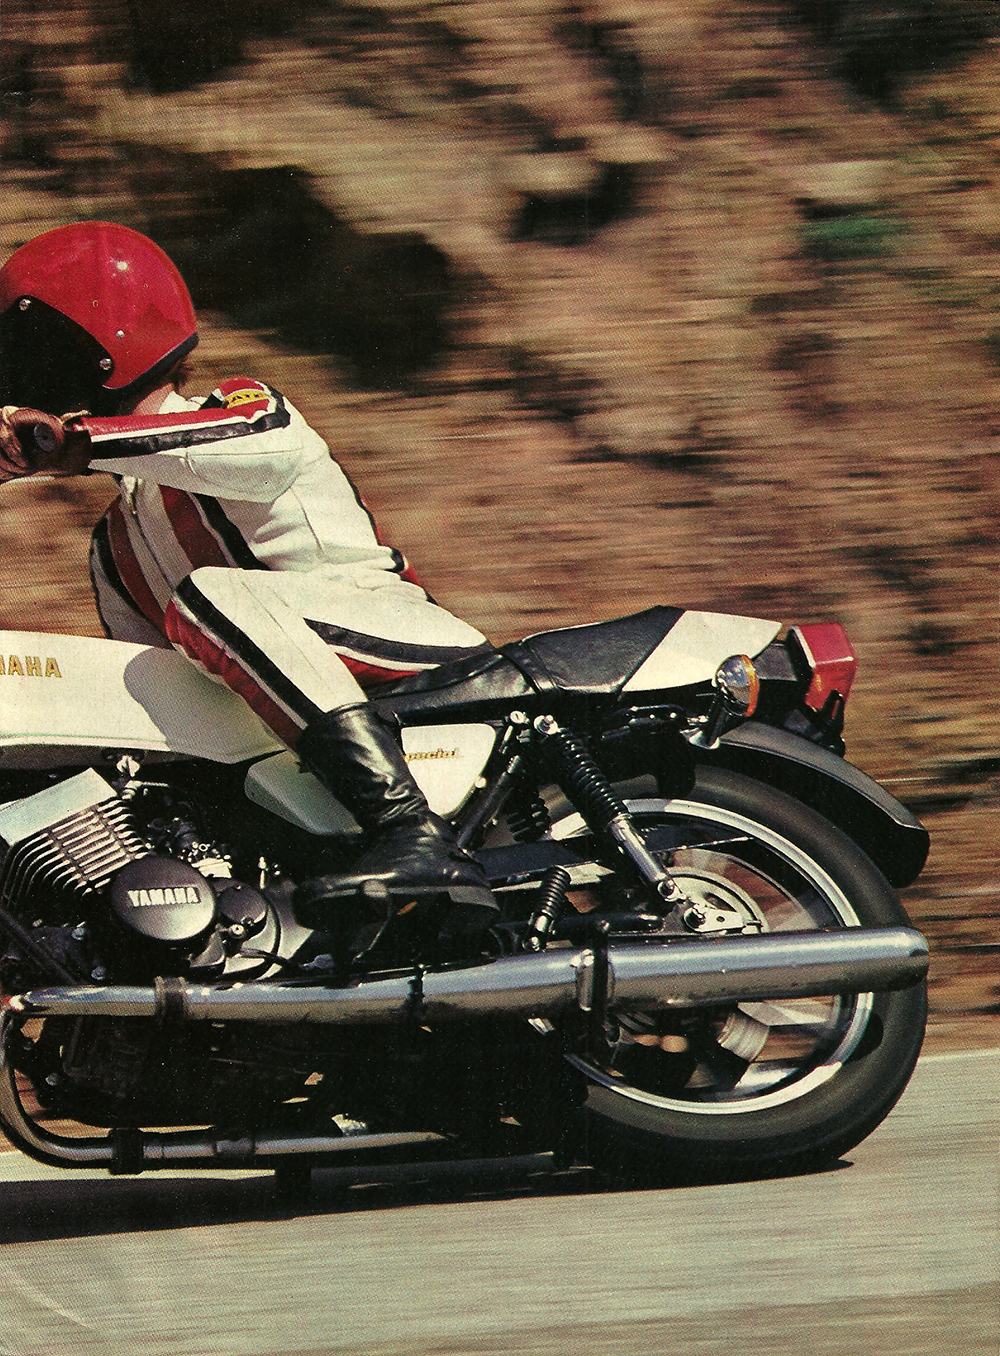 1979 Yamaha RD400F road test 02.jpg